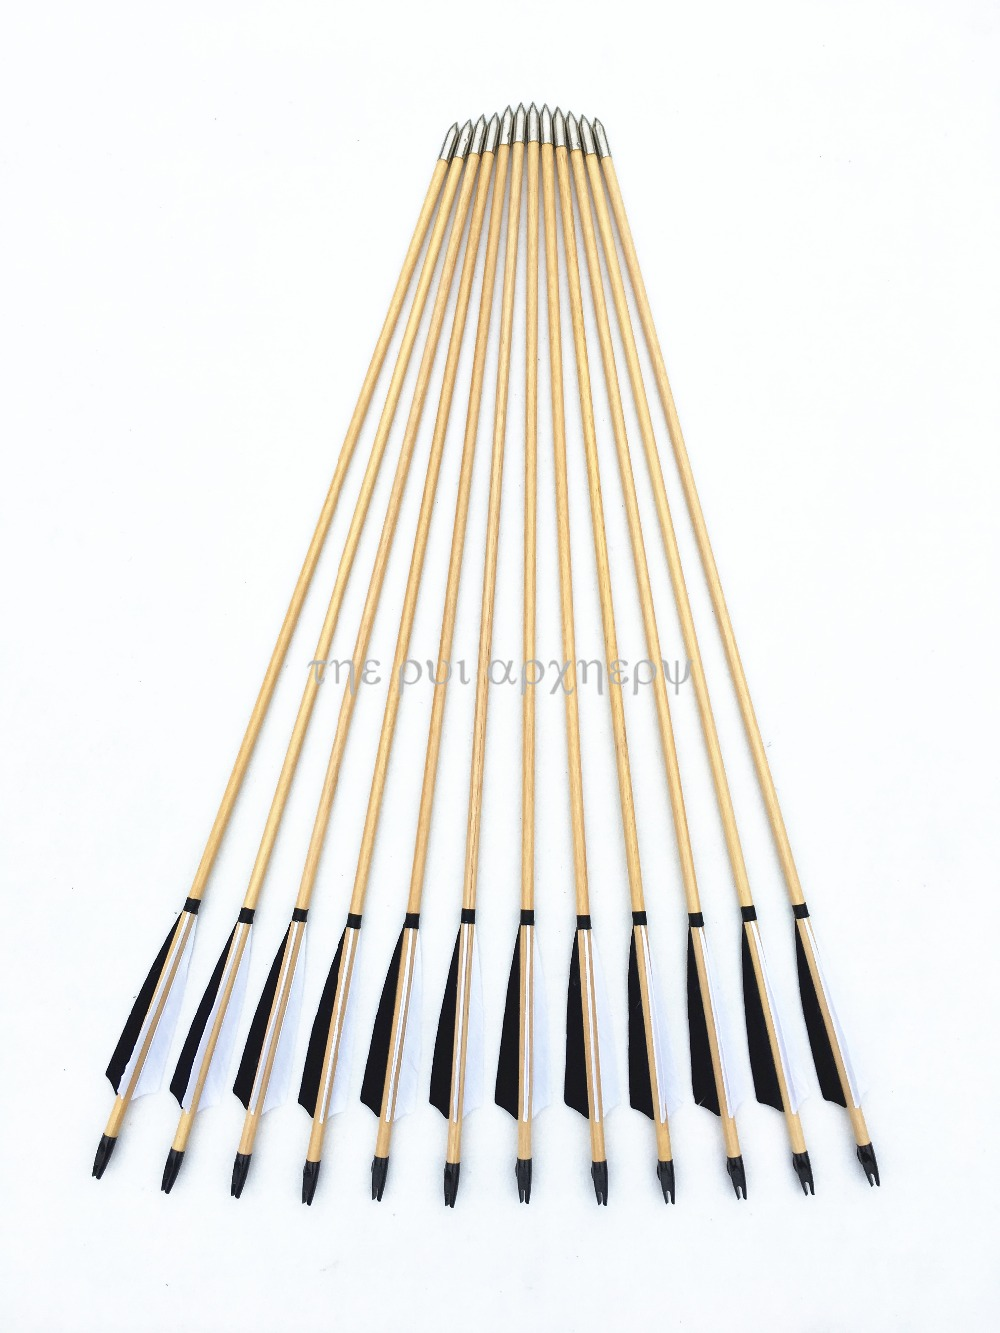 6/12/24pcs Wooden Arrows Traditional Target Arrow Turkey Eagle Feathers Fletched With Field Points Tips For Hunting Archery